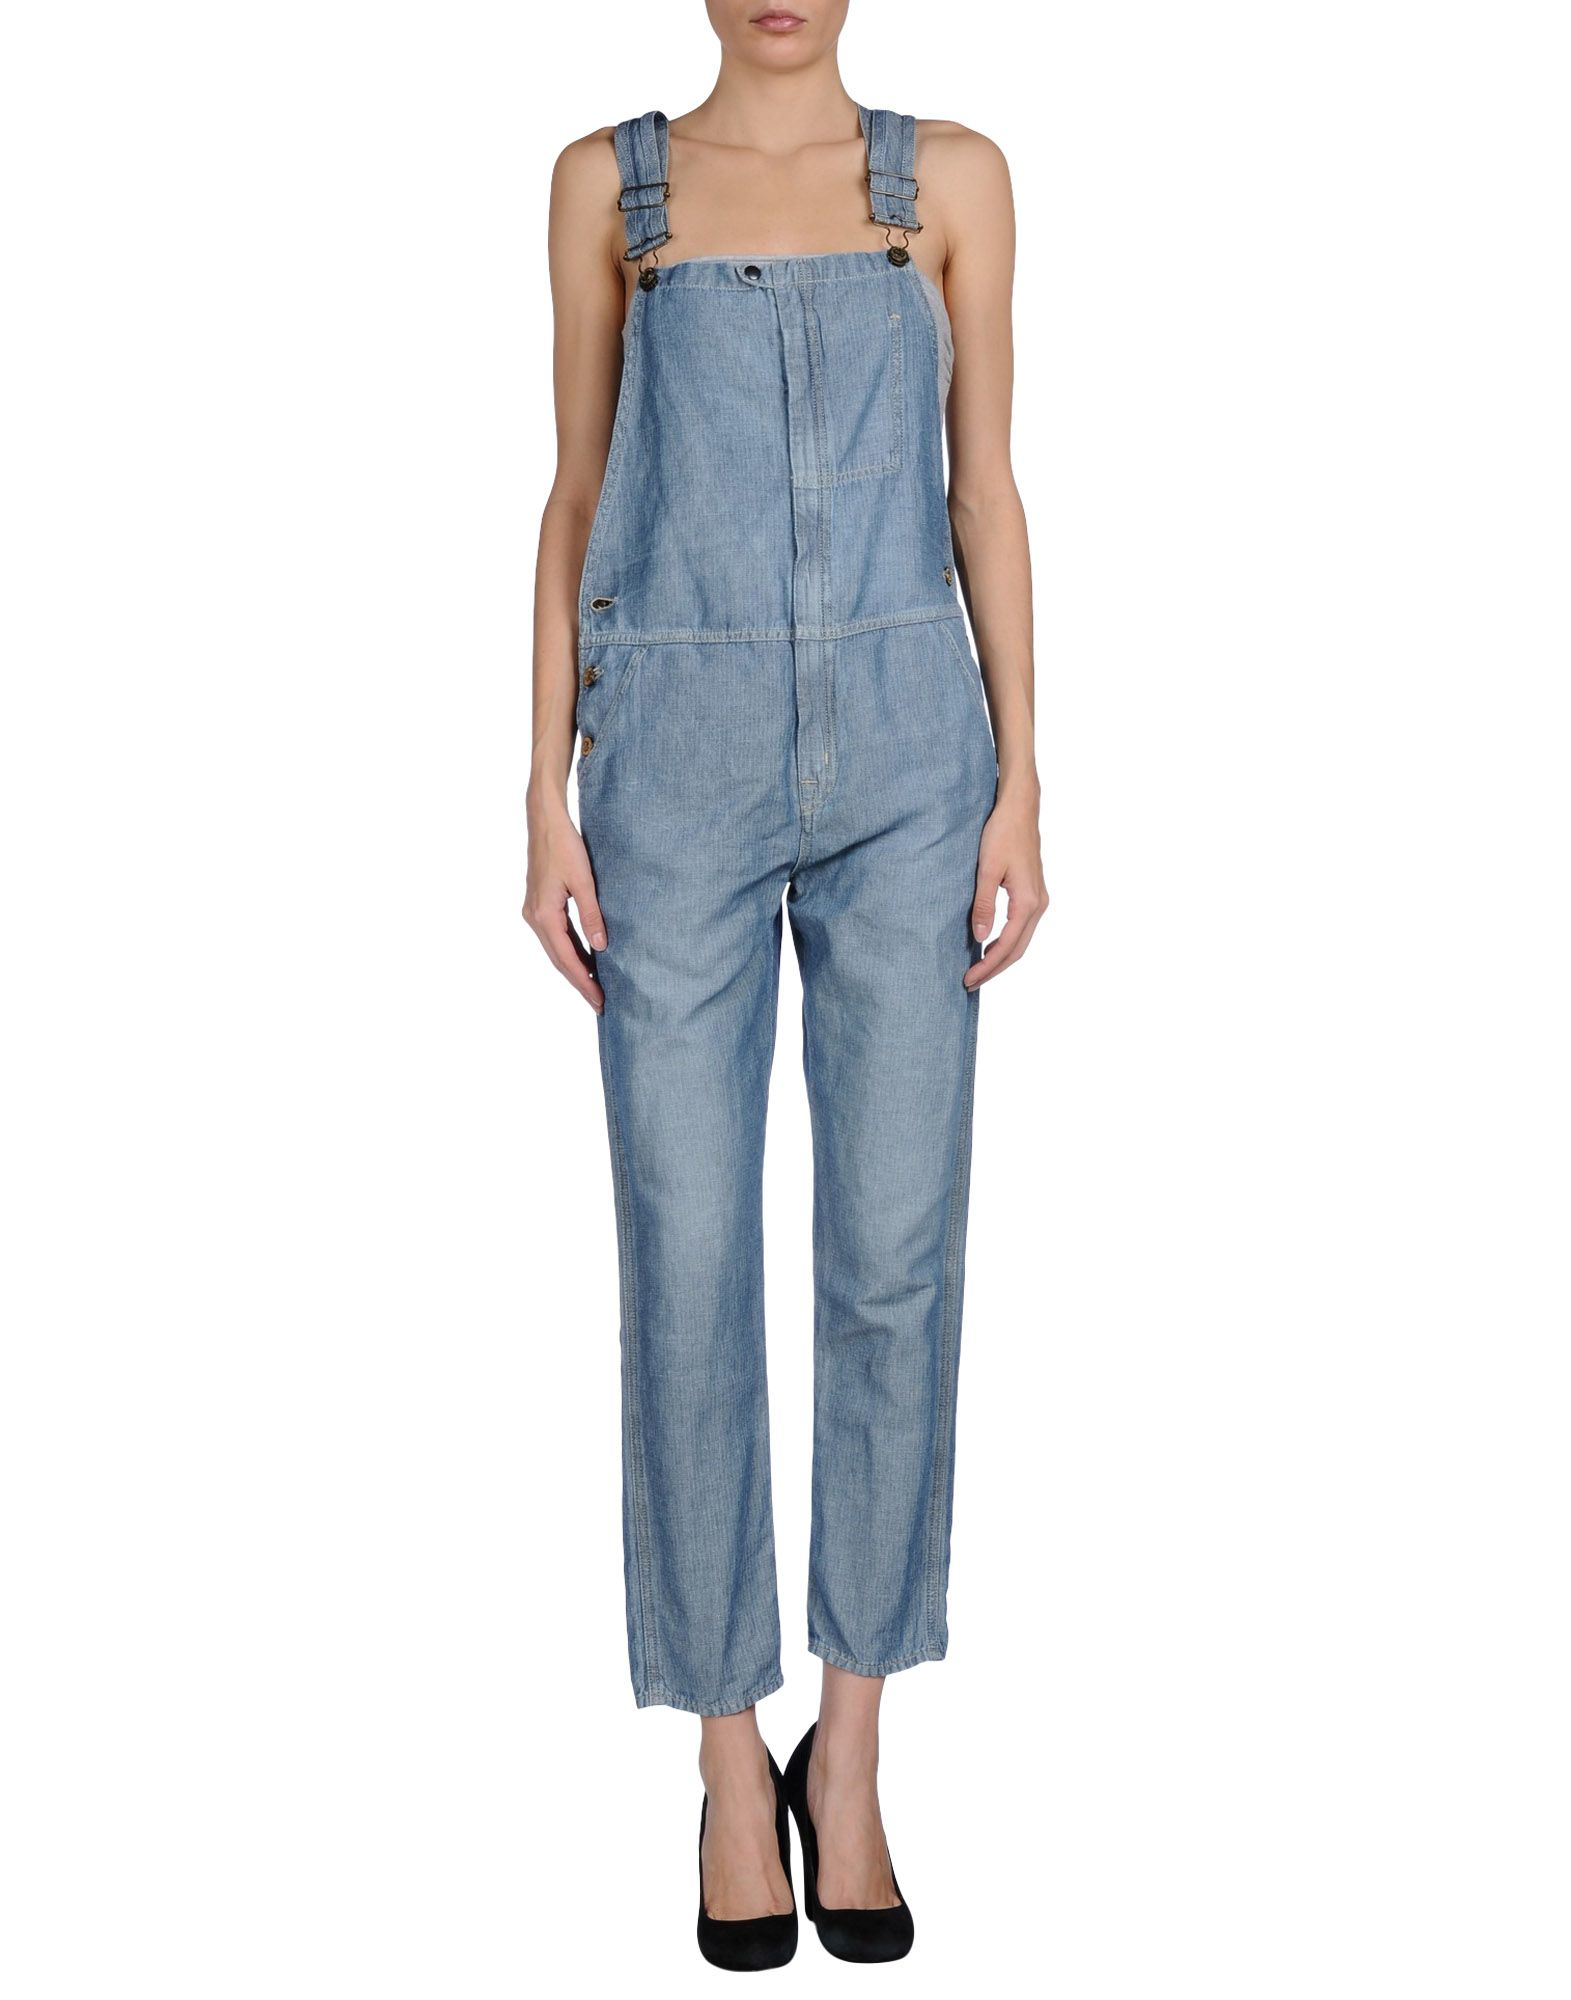 DUNGAREES - Short dungarees Truenyc Clearance Recommend xrhgyS